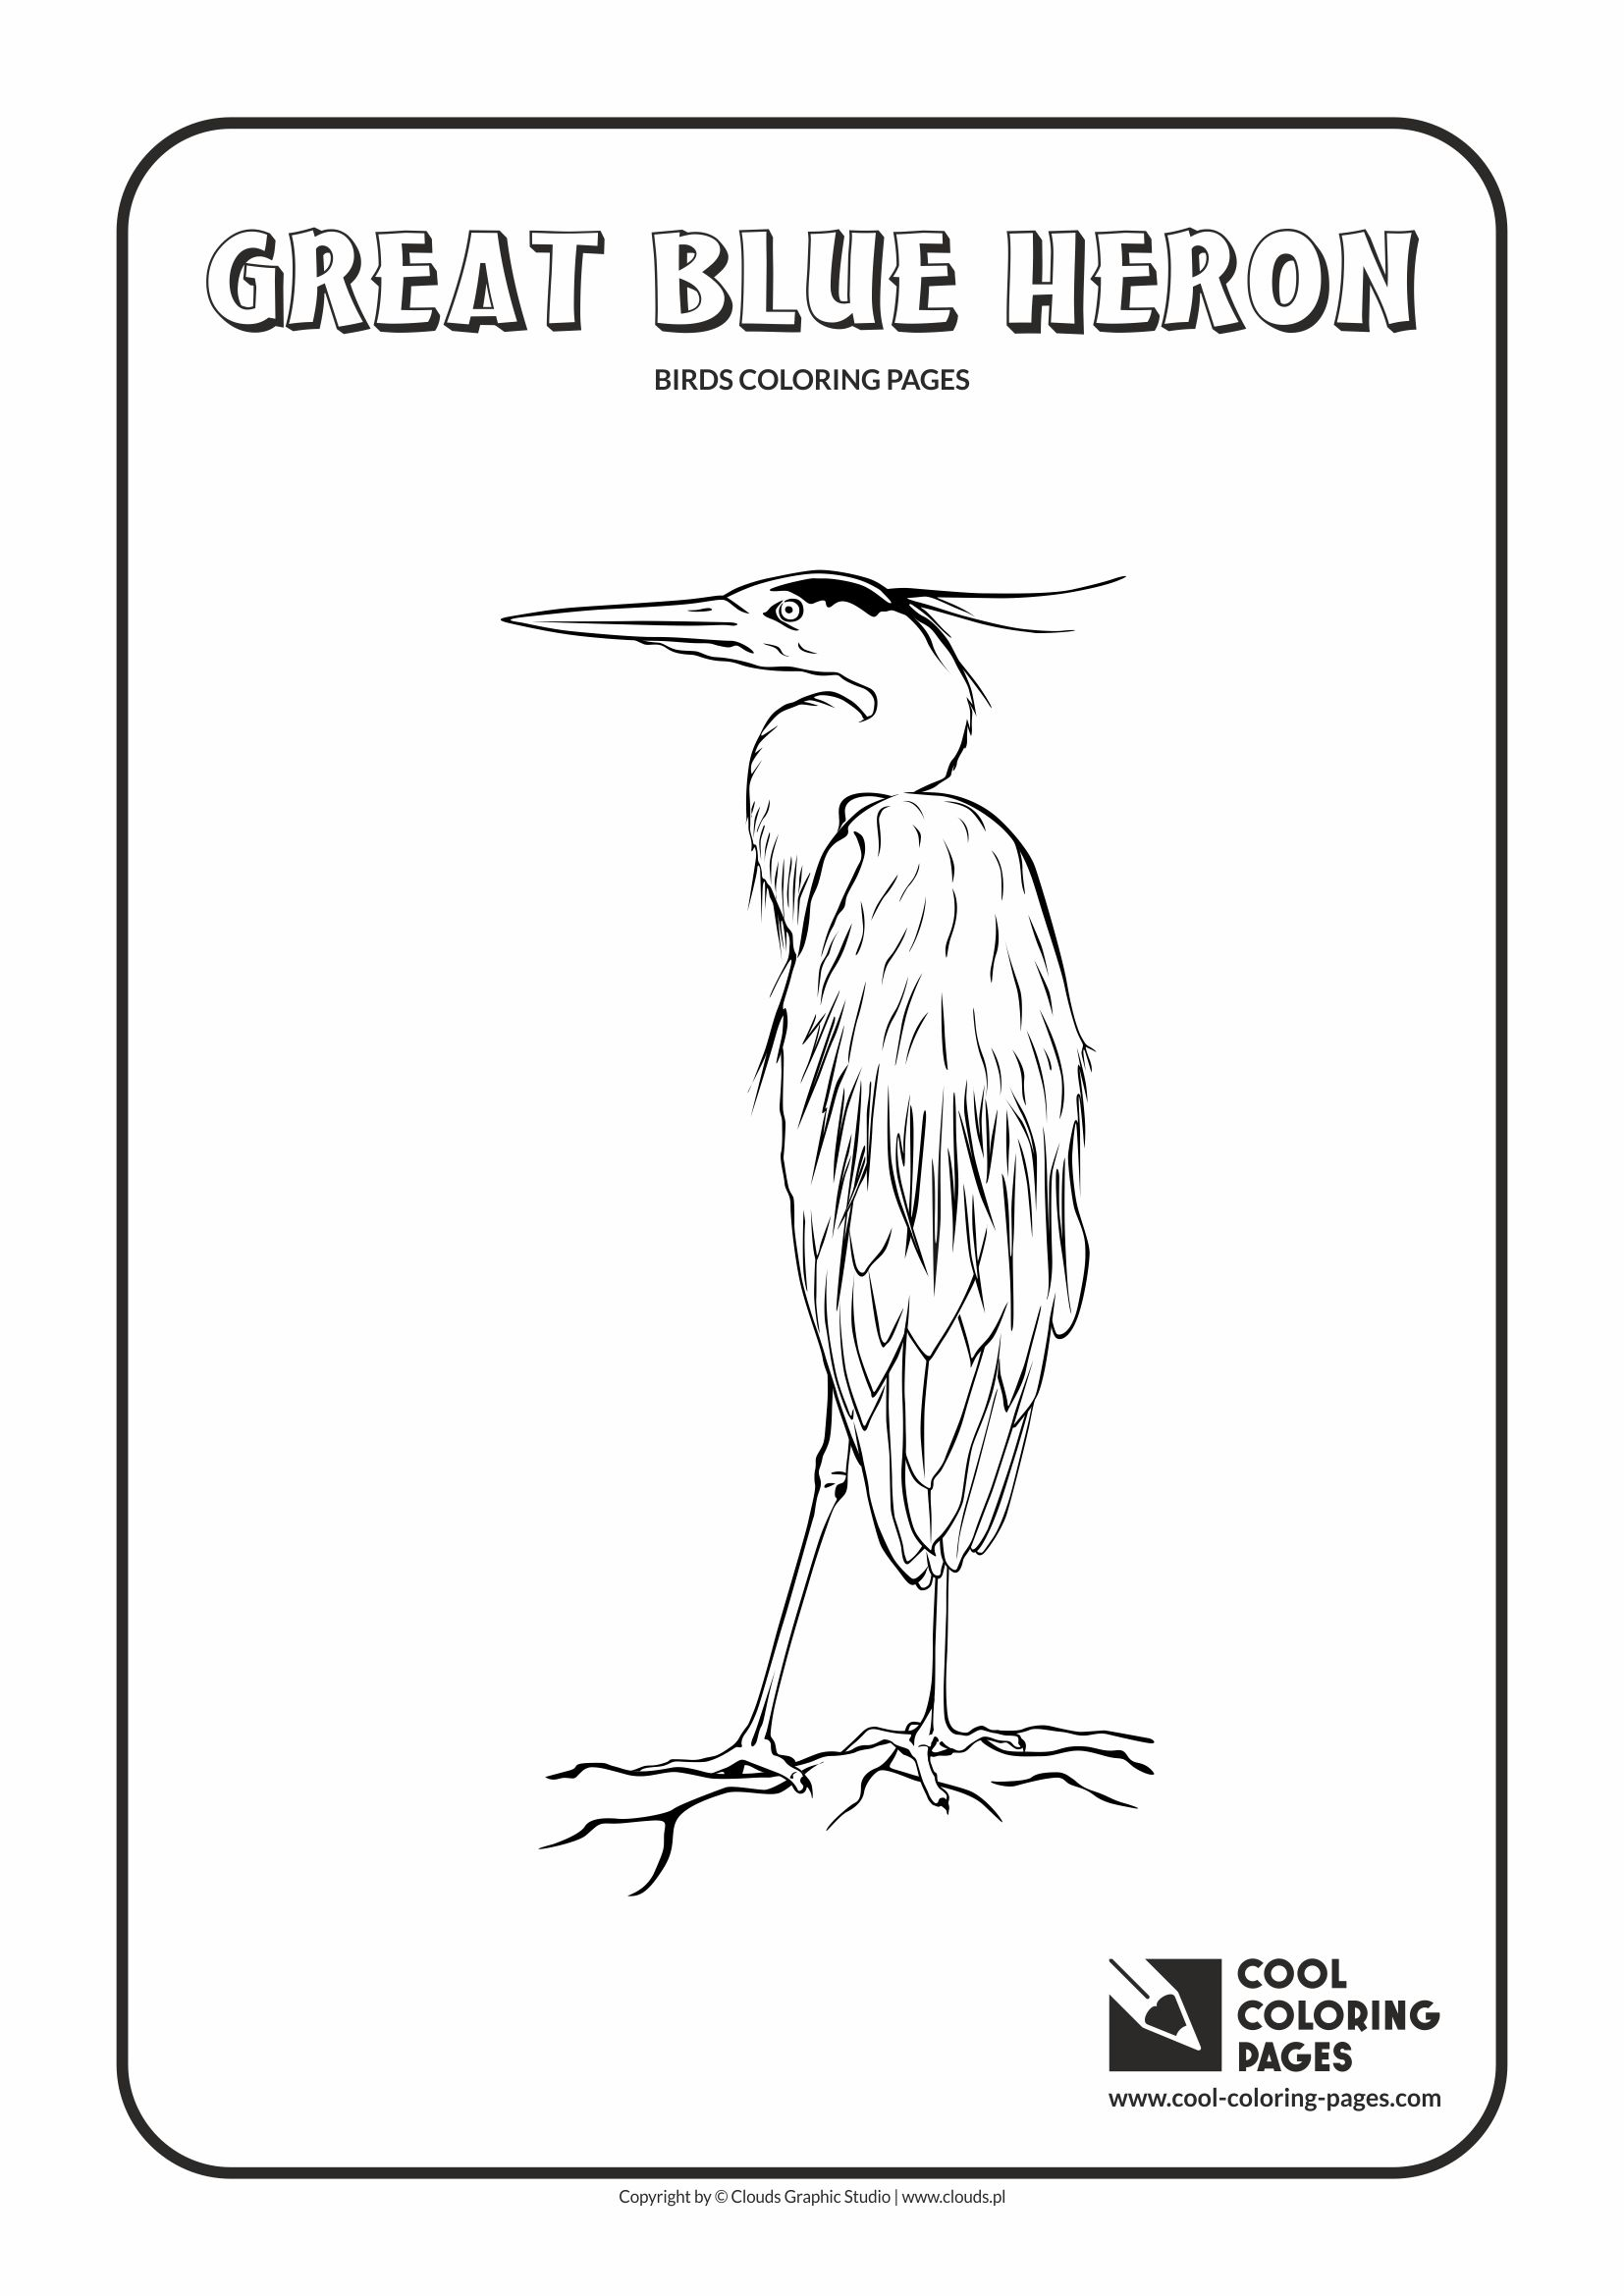 Heron Bird Coloring Pages Cool Coloring Pages Birds coloring pages Cool Coloring